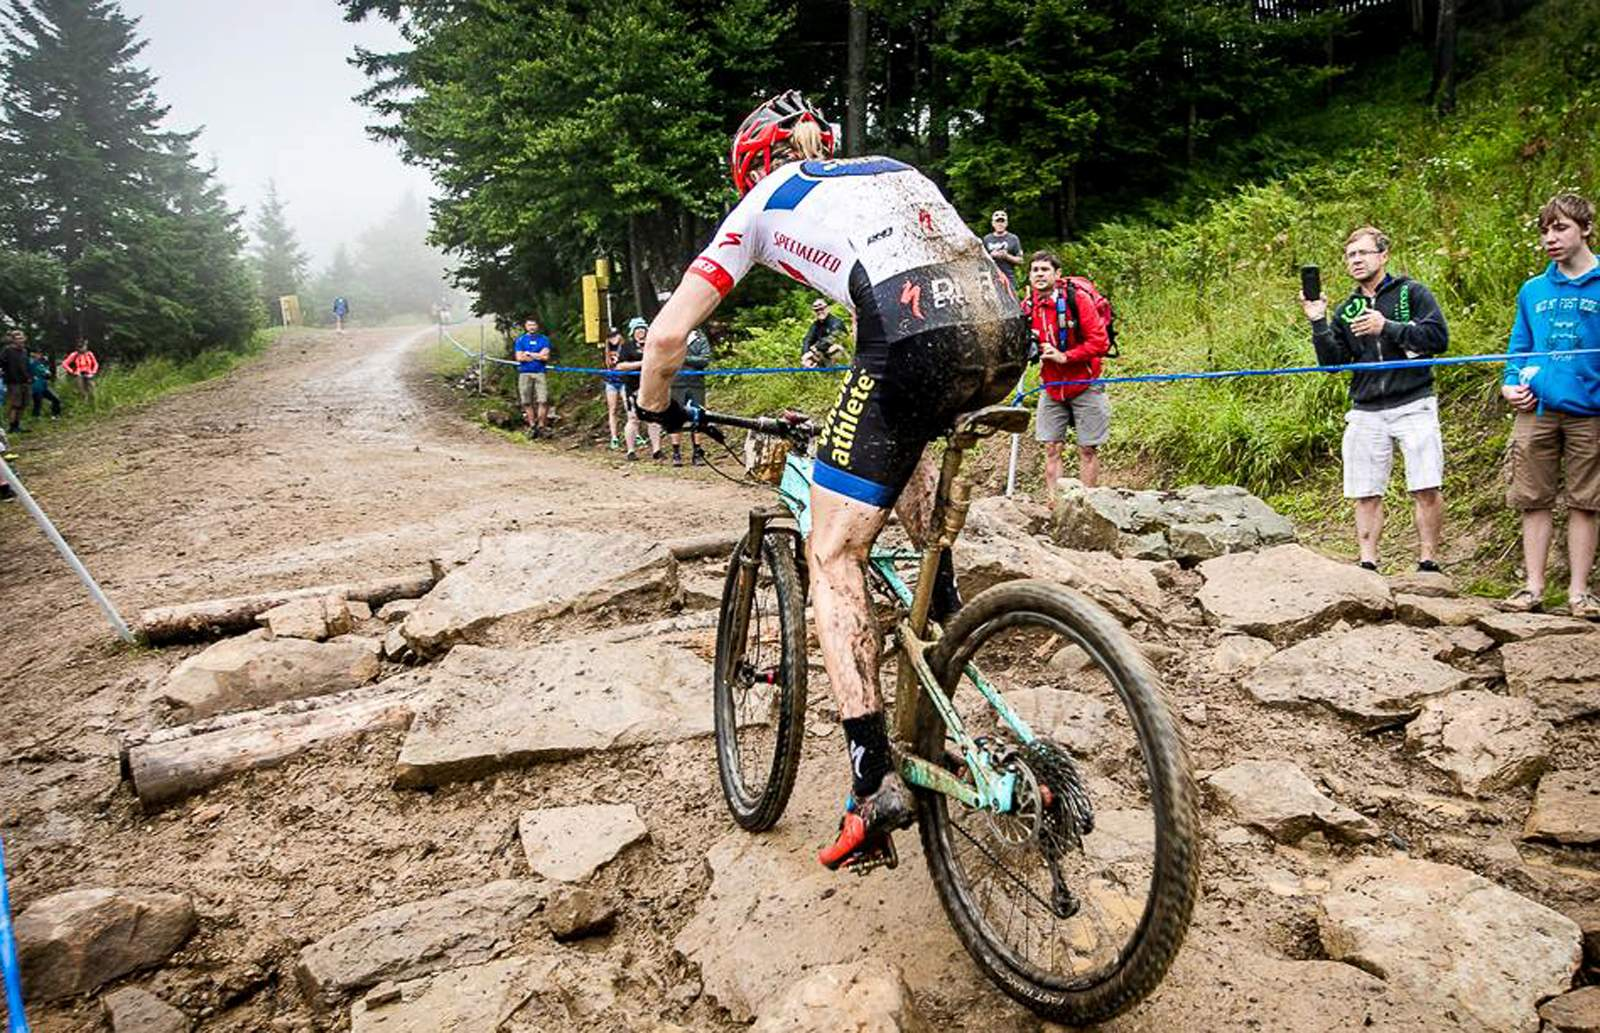 Durango Colorado Quinn Simmons wins junior cross country mountain bike title News 60x60 image